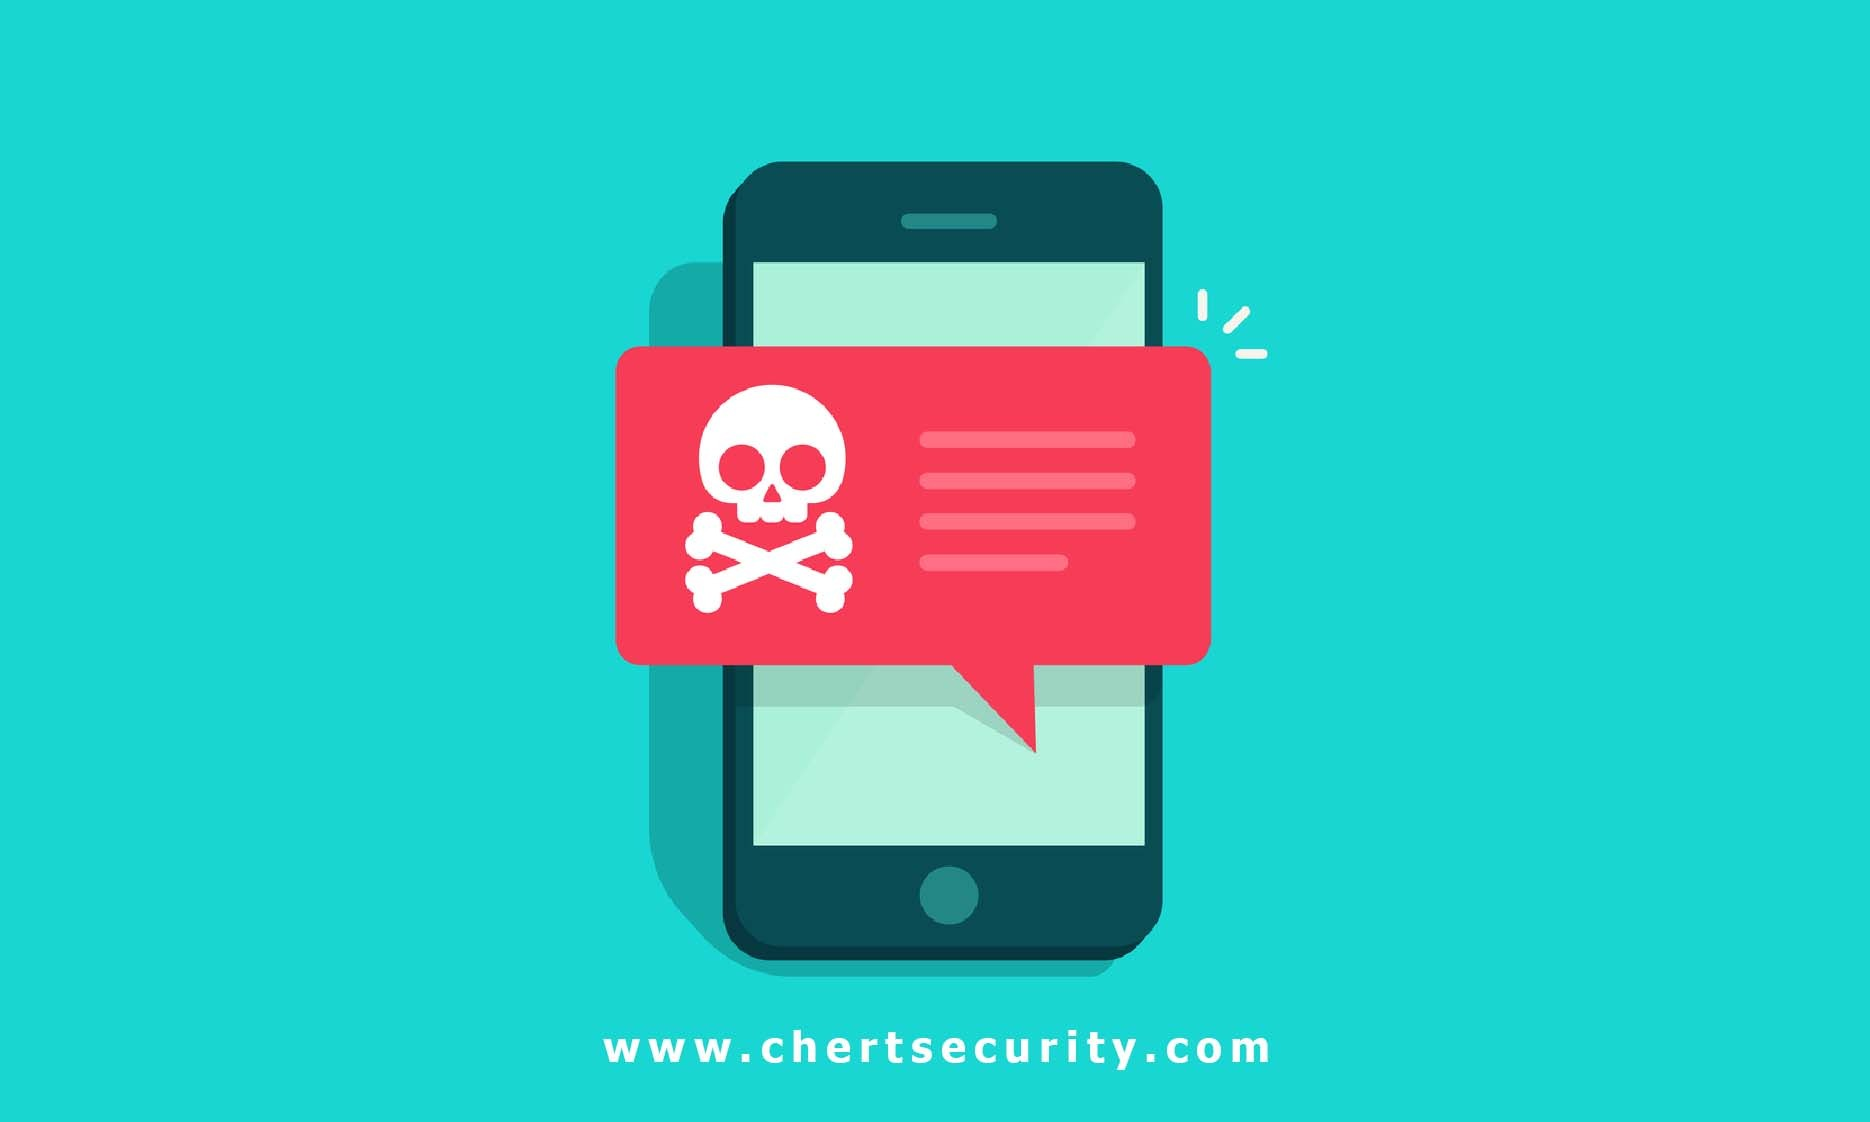 MOBILE RANSOMWARE – WHAT YOU NEED TO KNOW